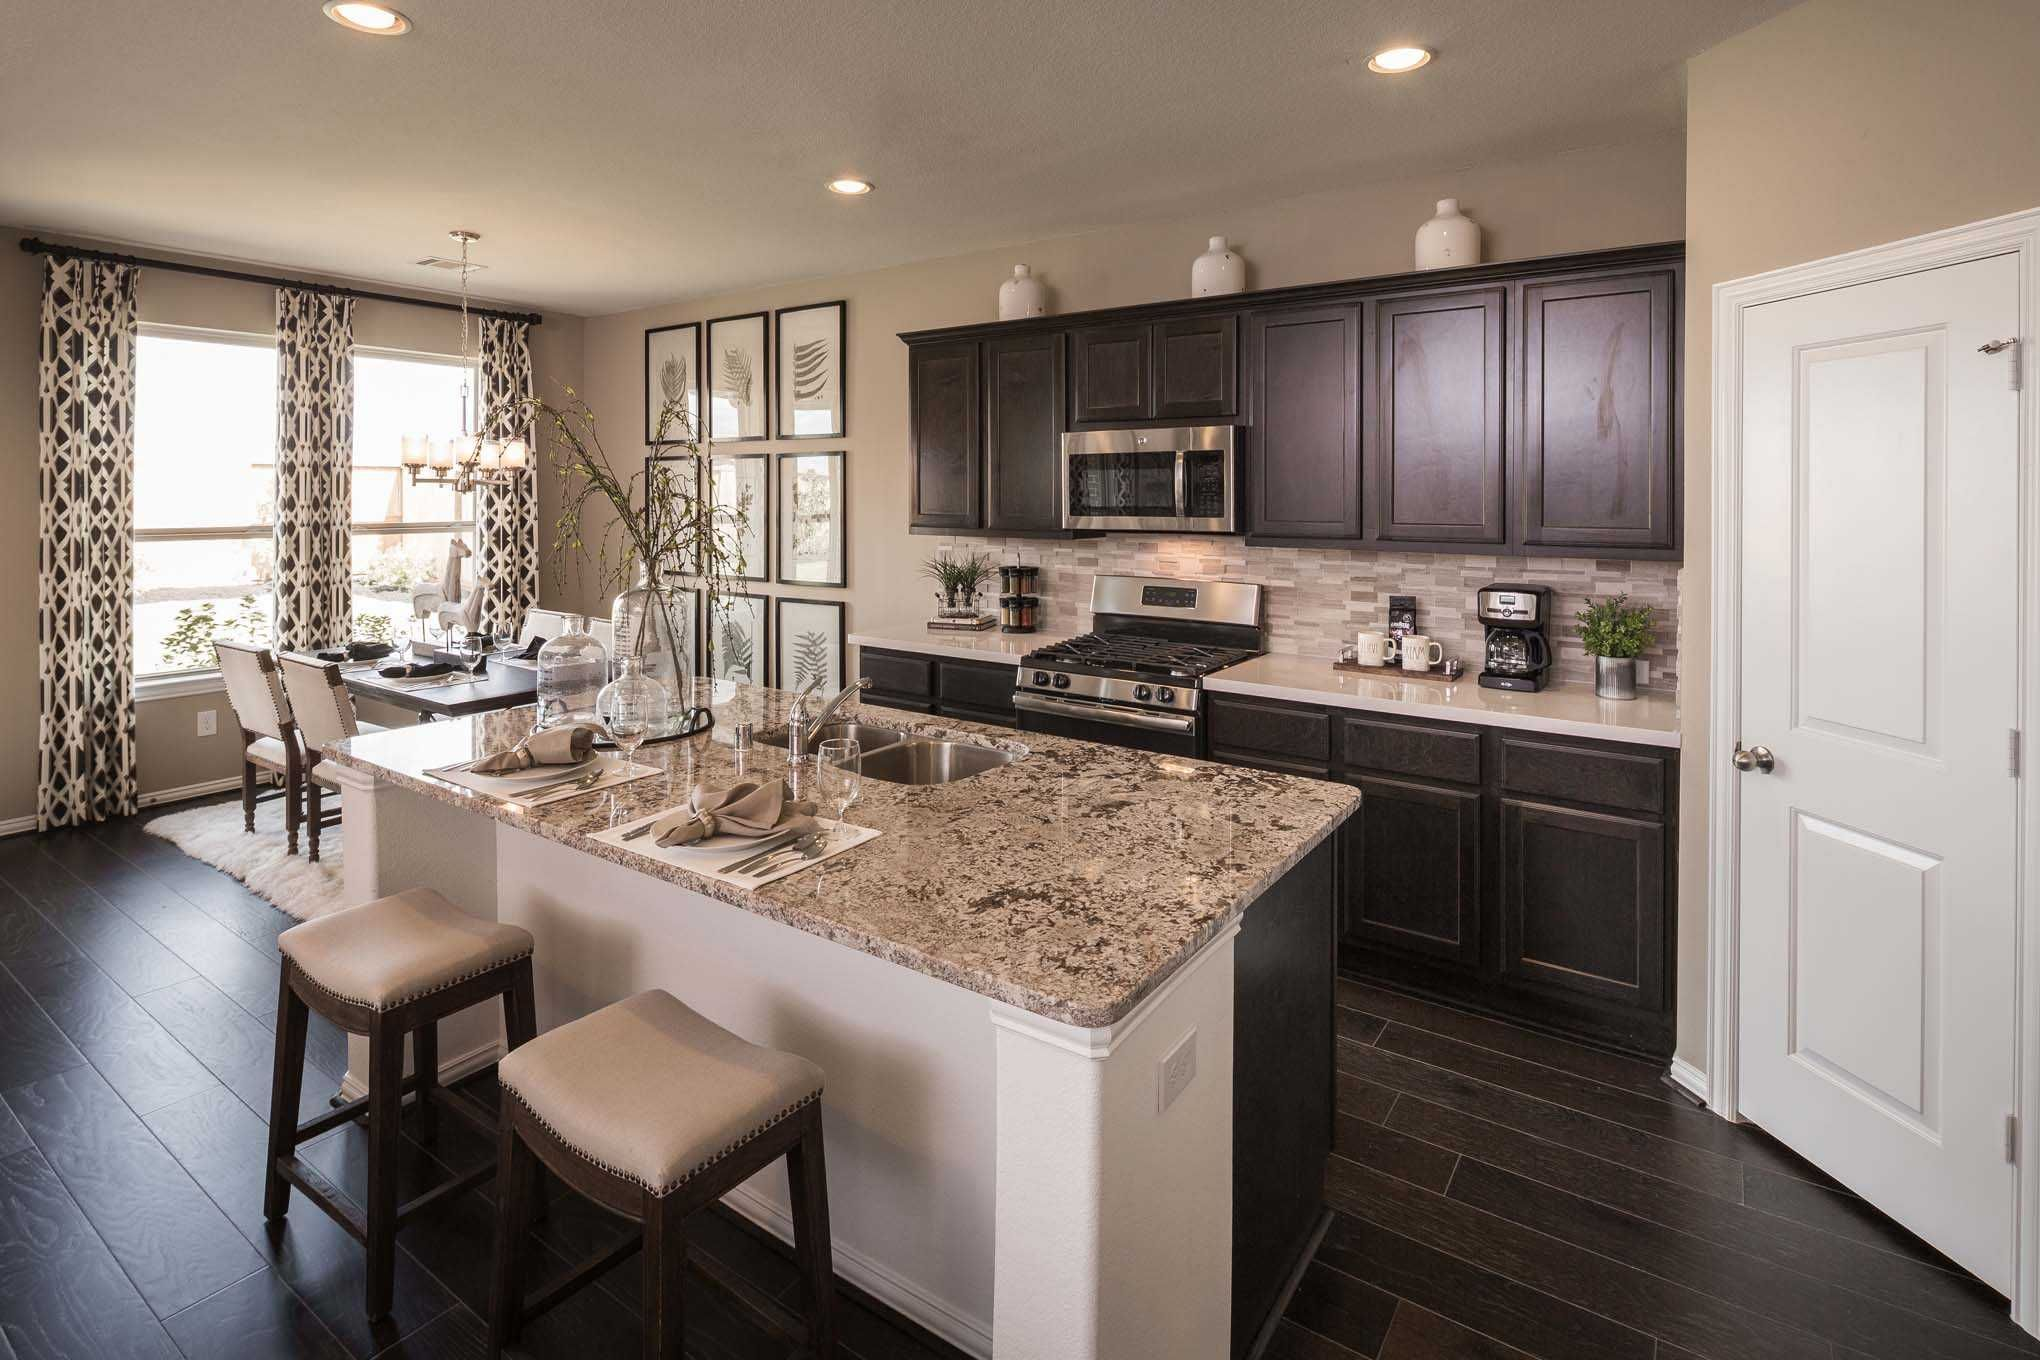 Kitchen Design Houston Stunning Highland Homes Richmond Model Home In Houston Texas Jordan Ranch Decorating Design